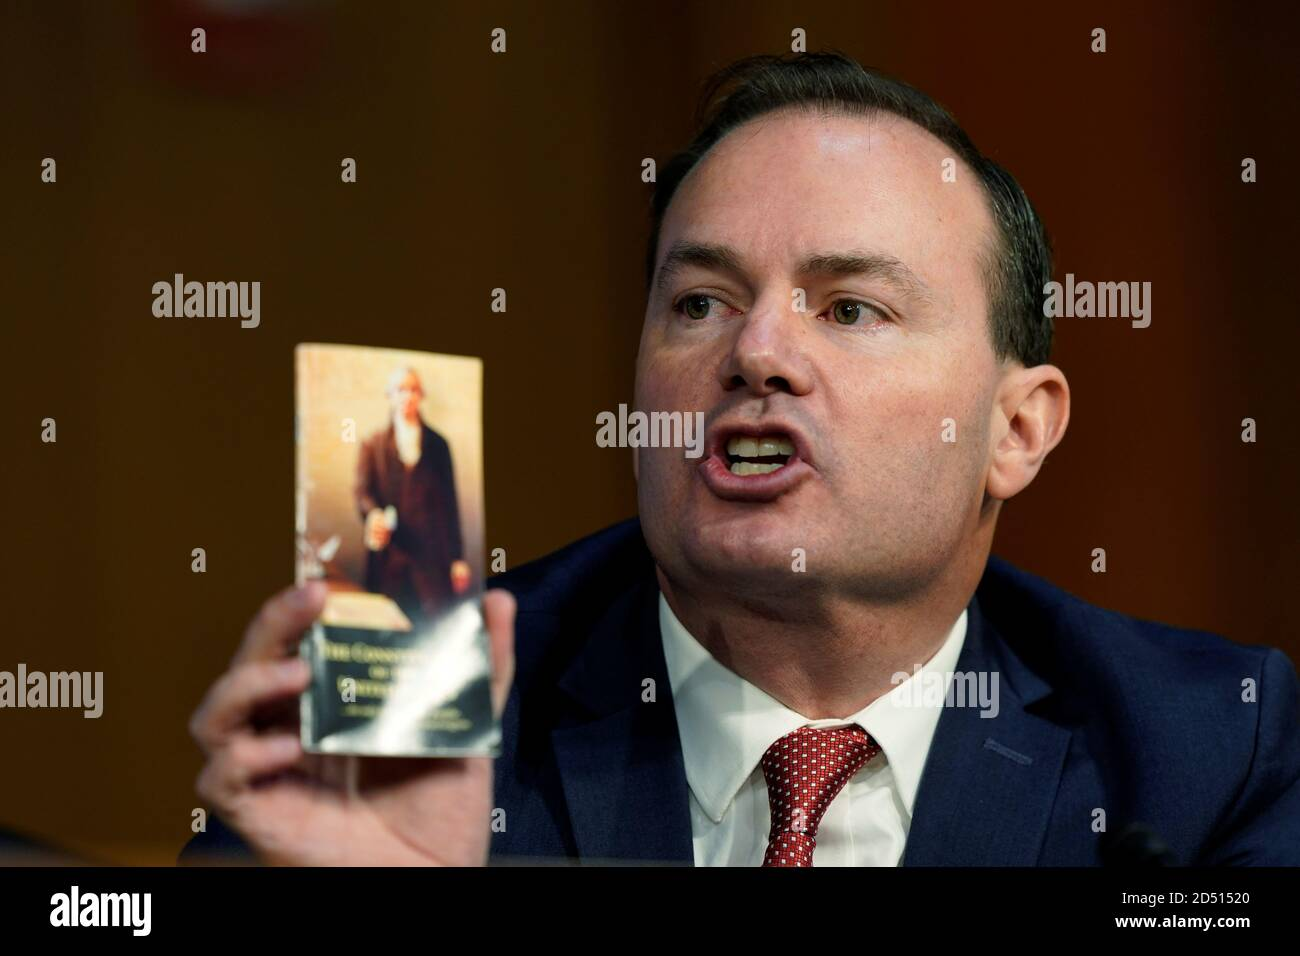 U.S. Senator Mike Lee (R-UT), who recently tested positive for coronavirus disease (COVID-19), holds a pocket copy of the U.S. Constitution as he speaks during of a confirmation hearing of Judge Amy Coney Barrett on Capitol Hill in Washington, D.C., U.S., October 12, 2020. Susan Walsh/Pool via REUTERS Stock Photo